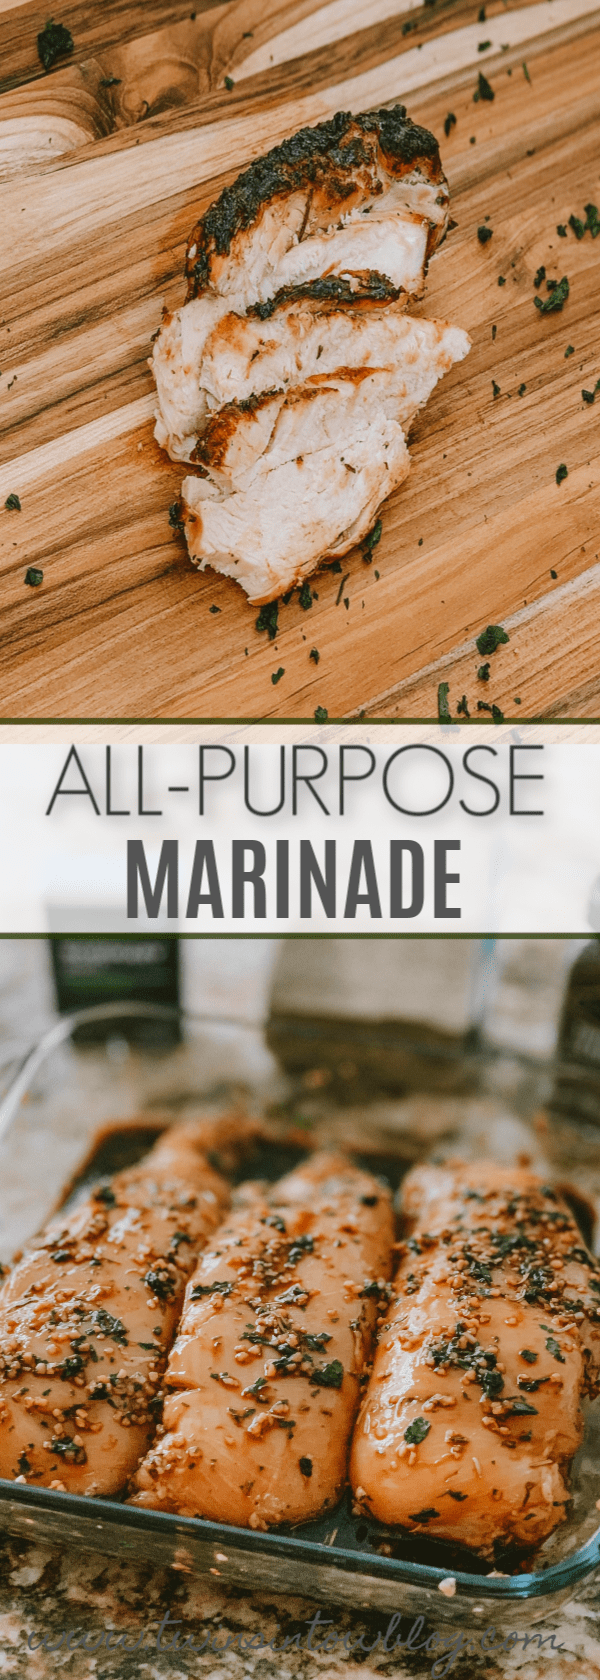 all purpose marinade